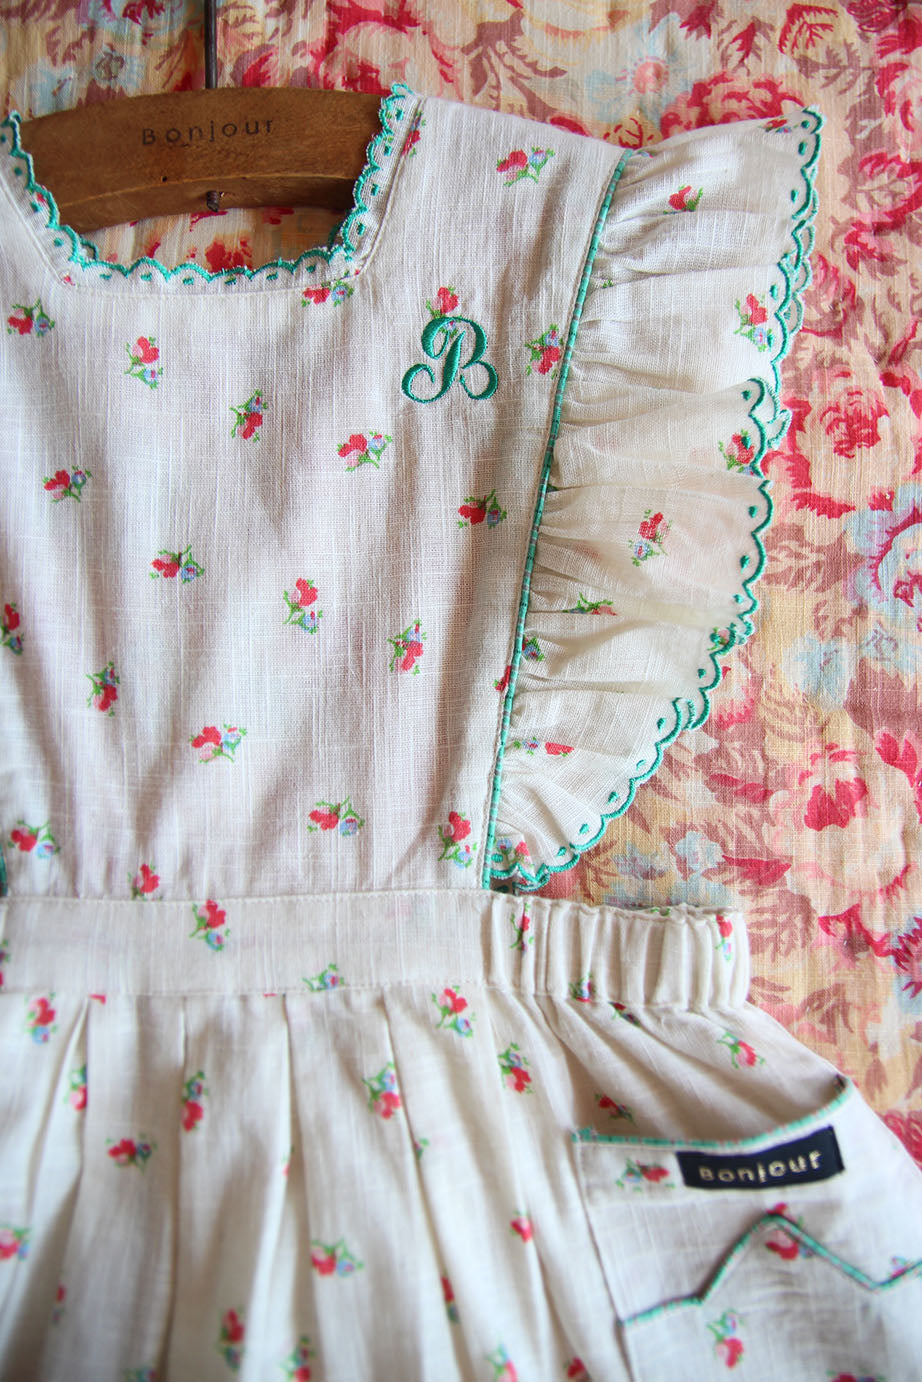 Bonjour Apron Dress detail